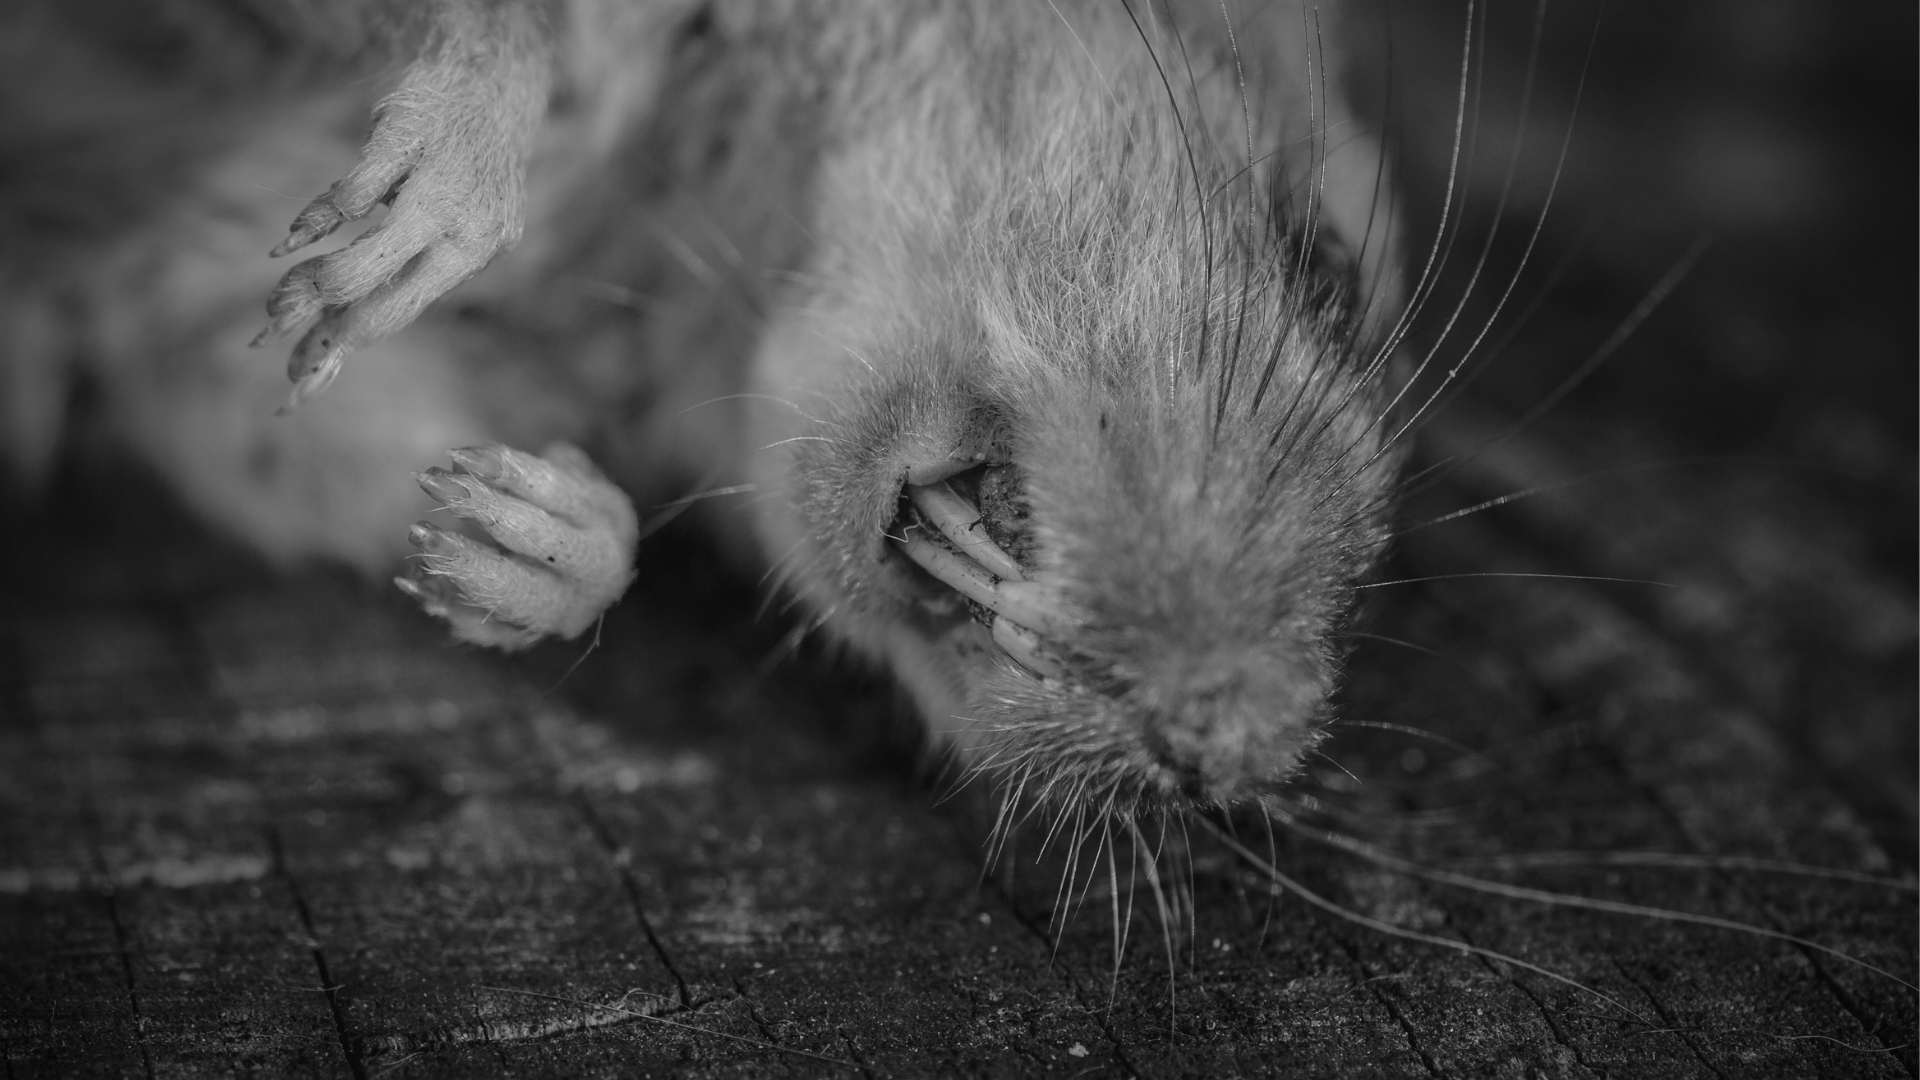 How To Dispose Of A Dead Rat (1)